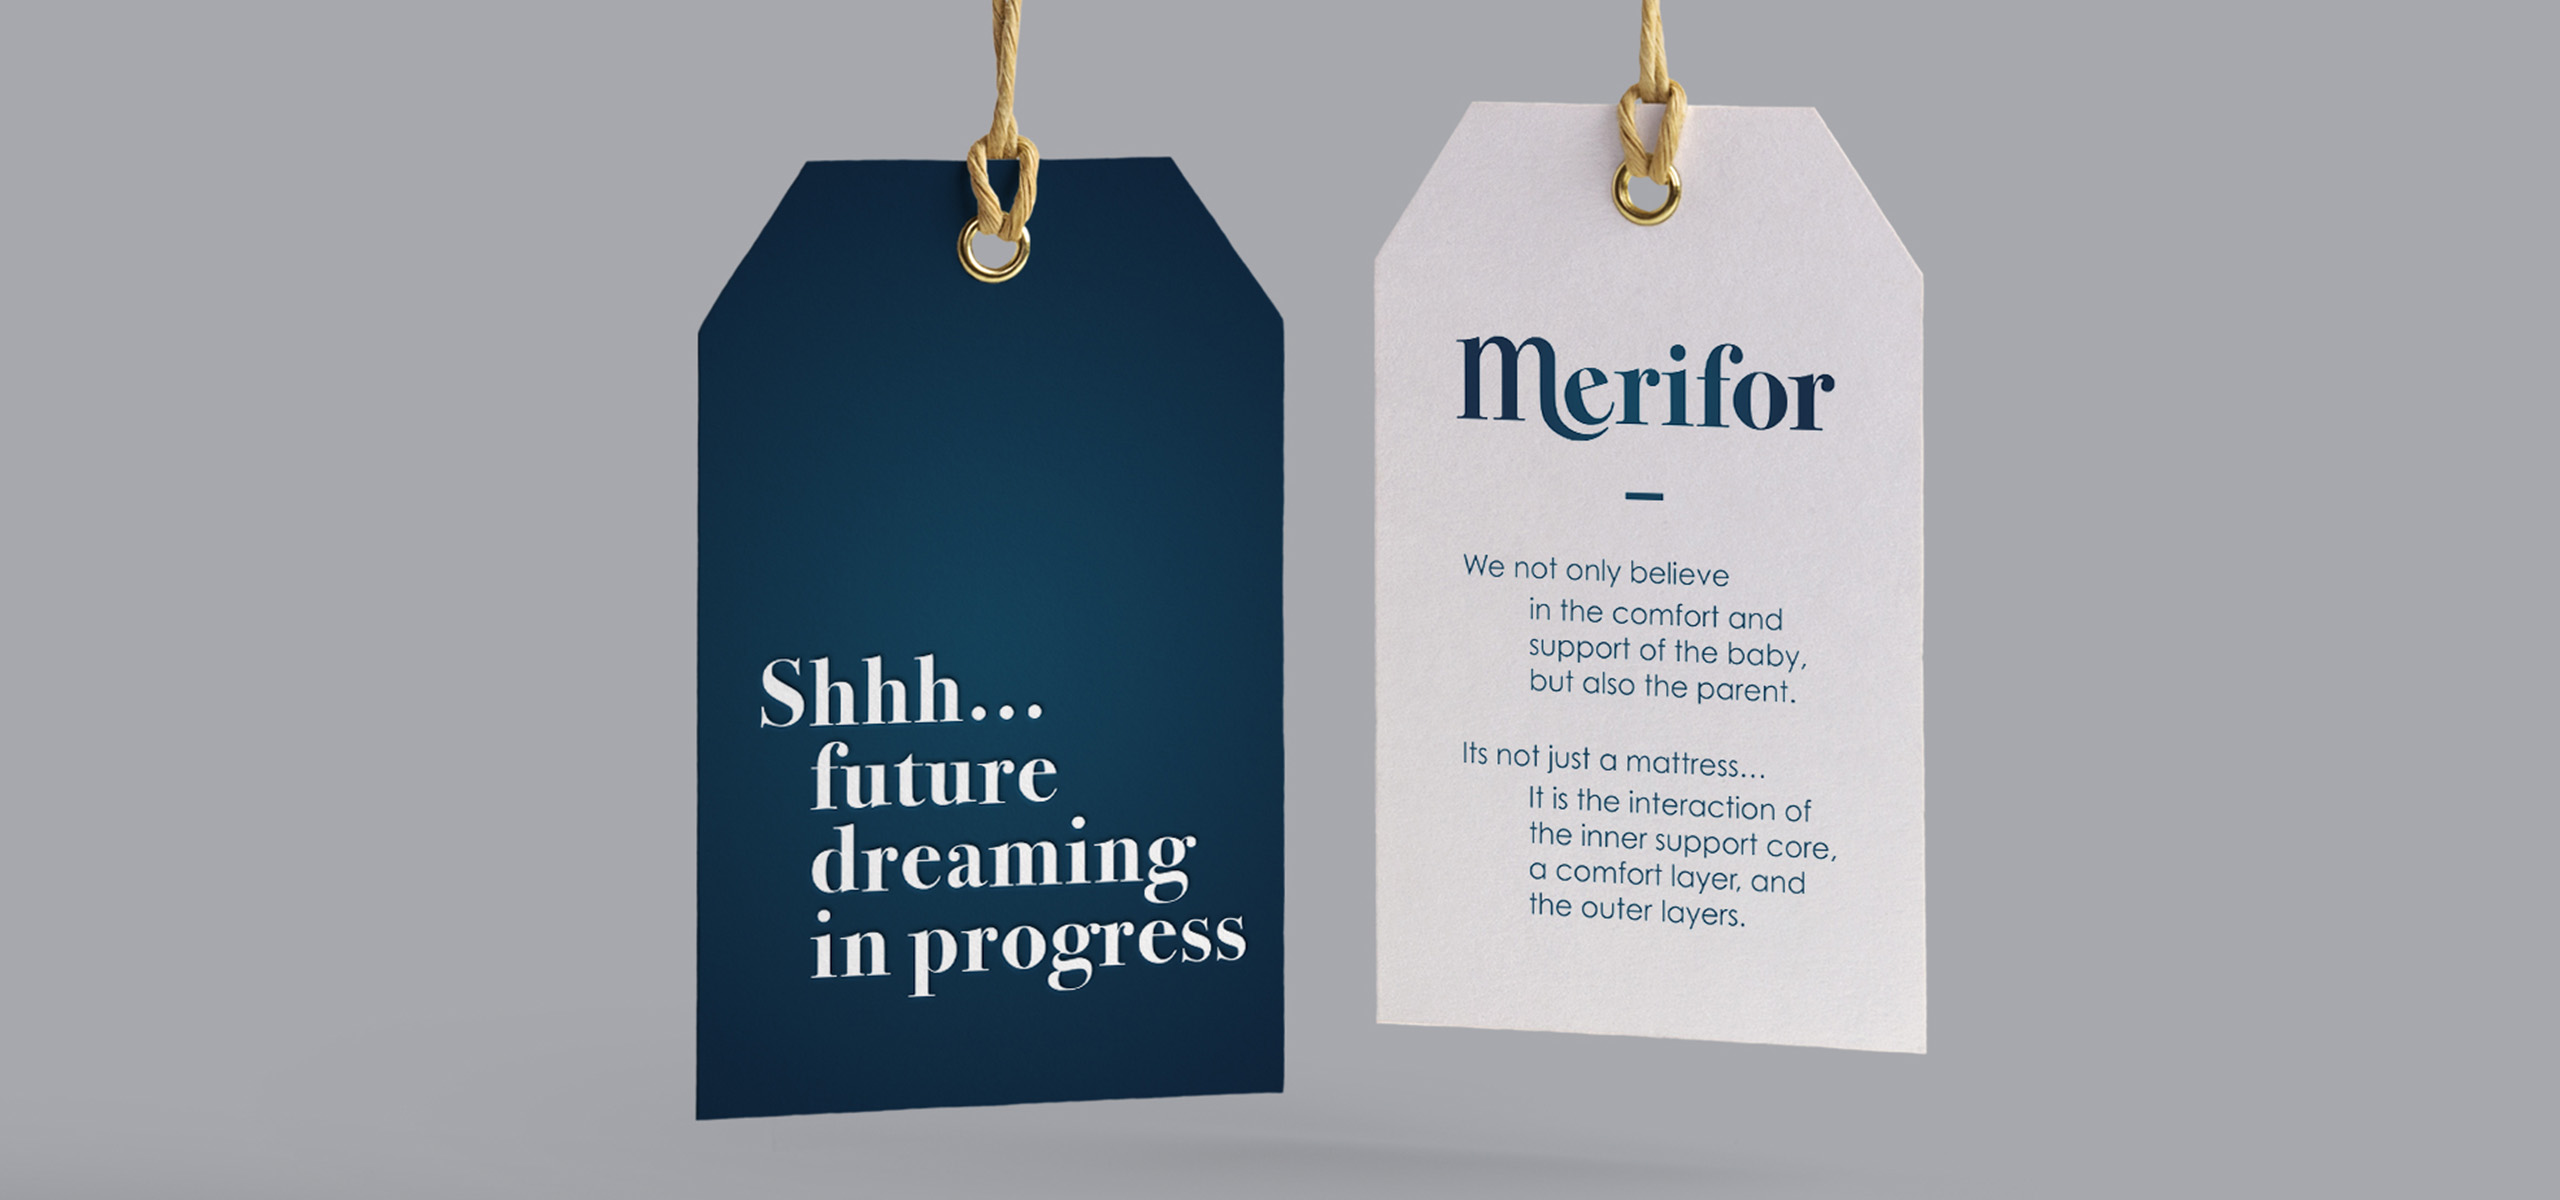 Label design for mattress startup brand Merifor, designed by White Bear Studio